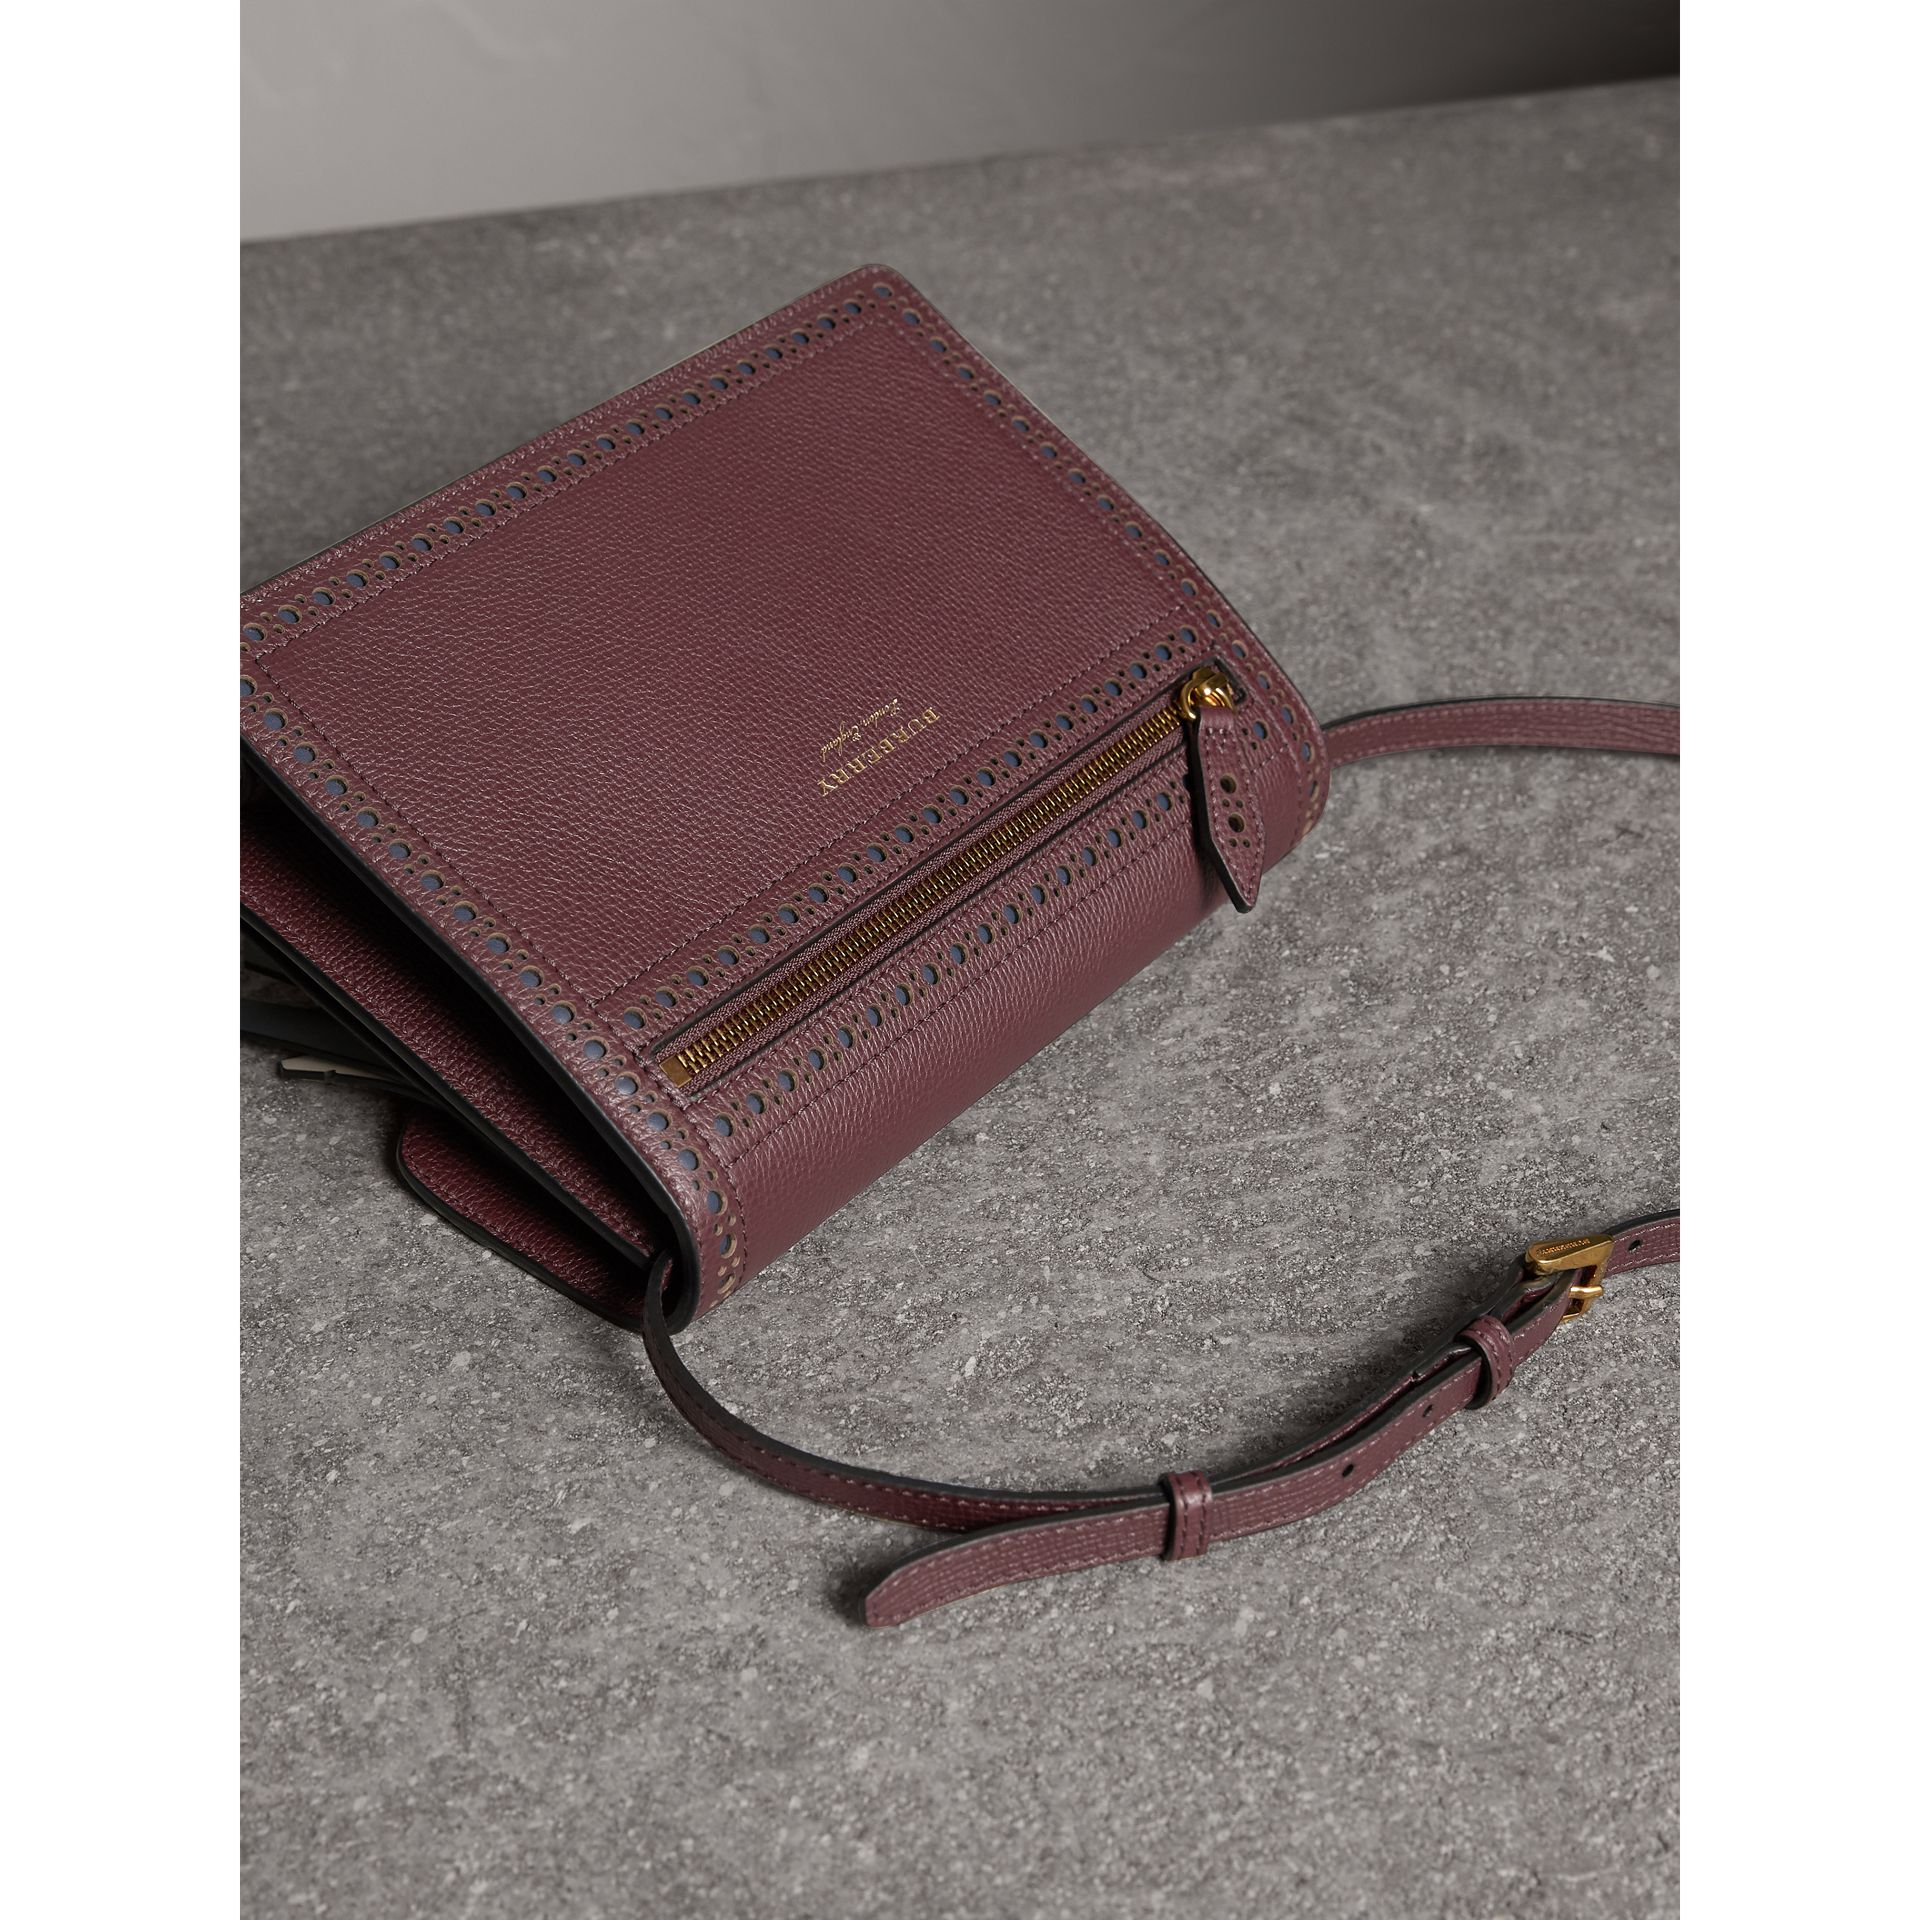 Brogue and Fringe Detail Leather Crossbody Bag in Mahogany Red - Women | Burberry Hong Kong - gallery image 3